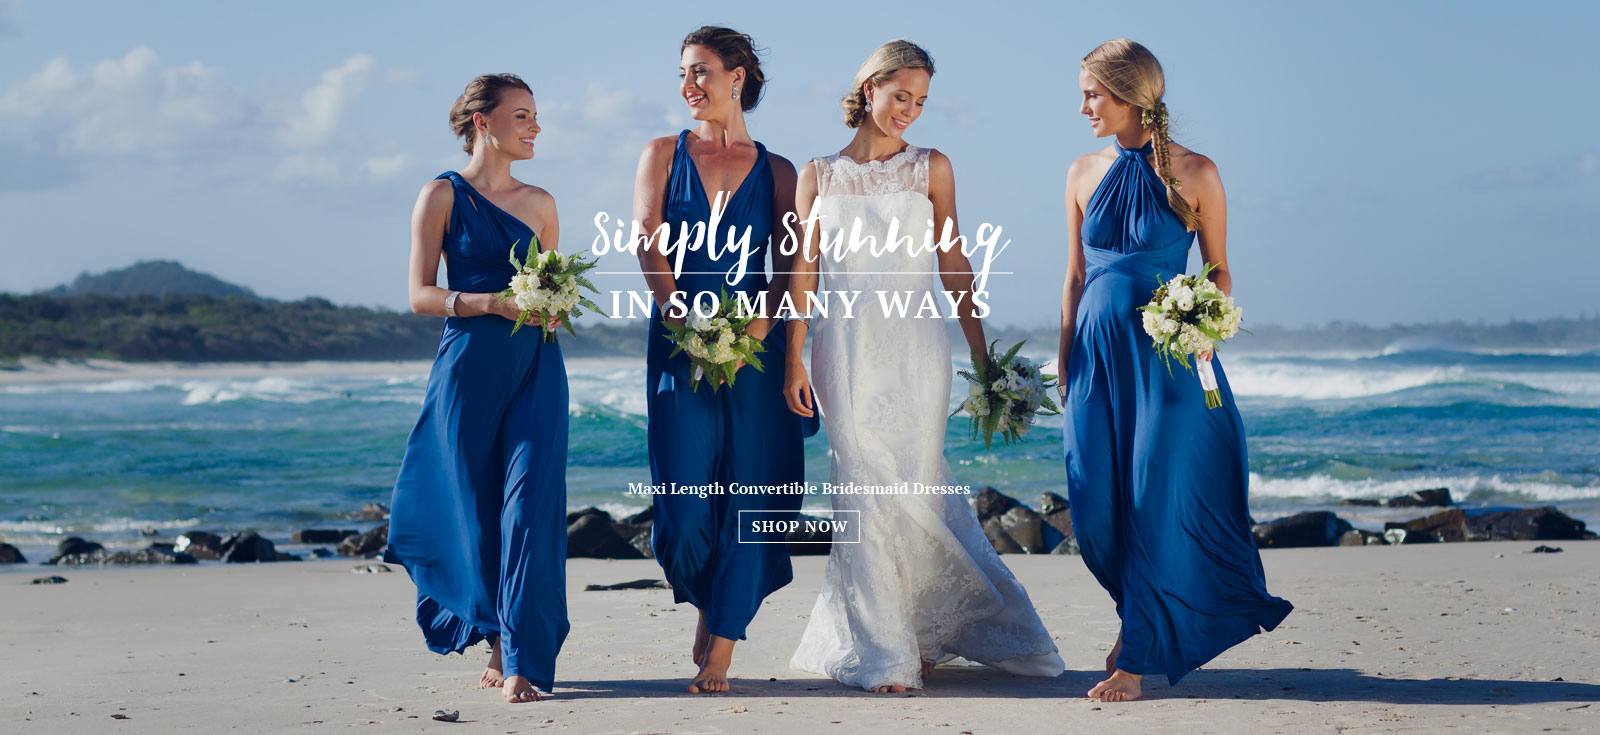 Buy Convertible Bridesmaids Dresses